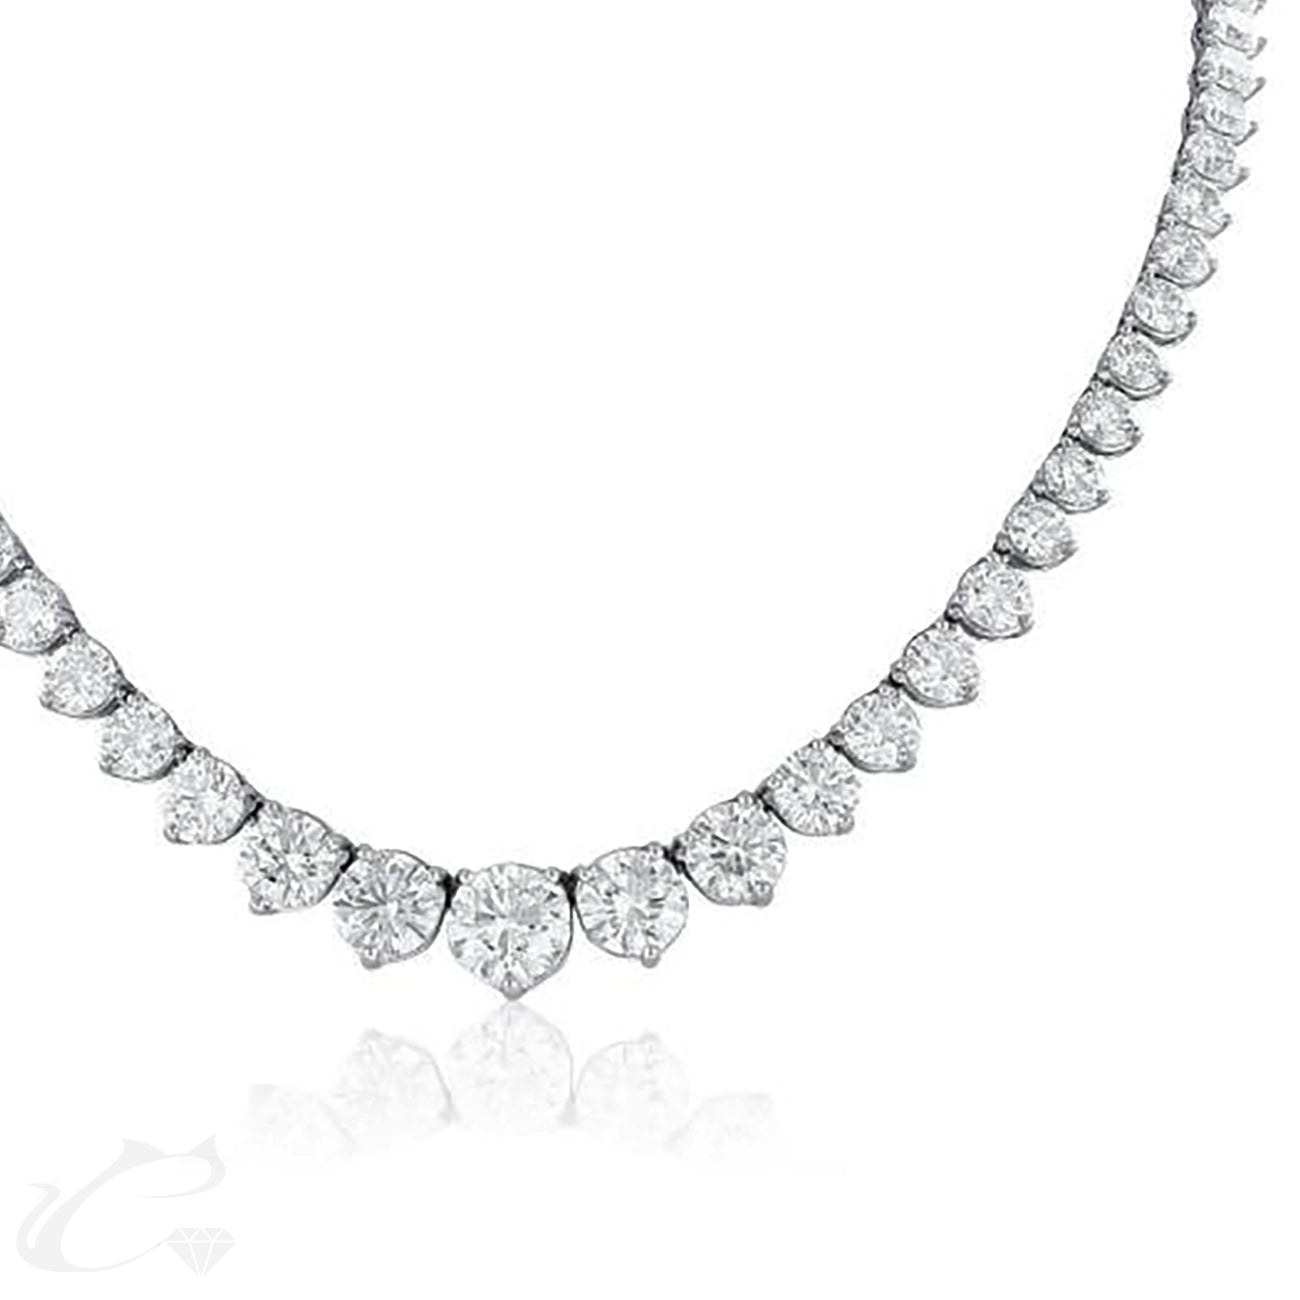 Diamond Riviera Necklace - Medium